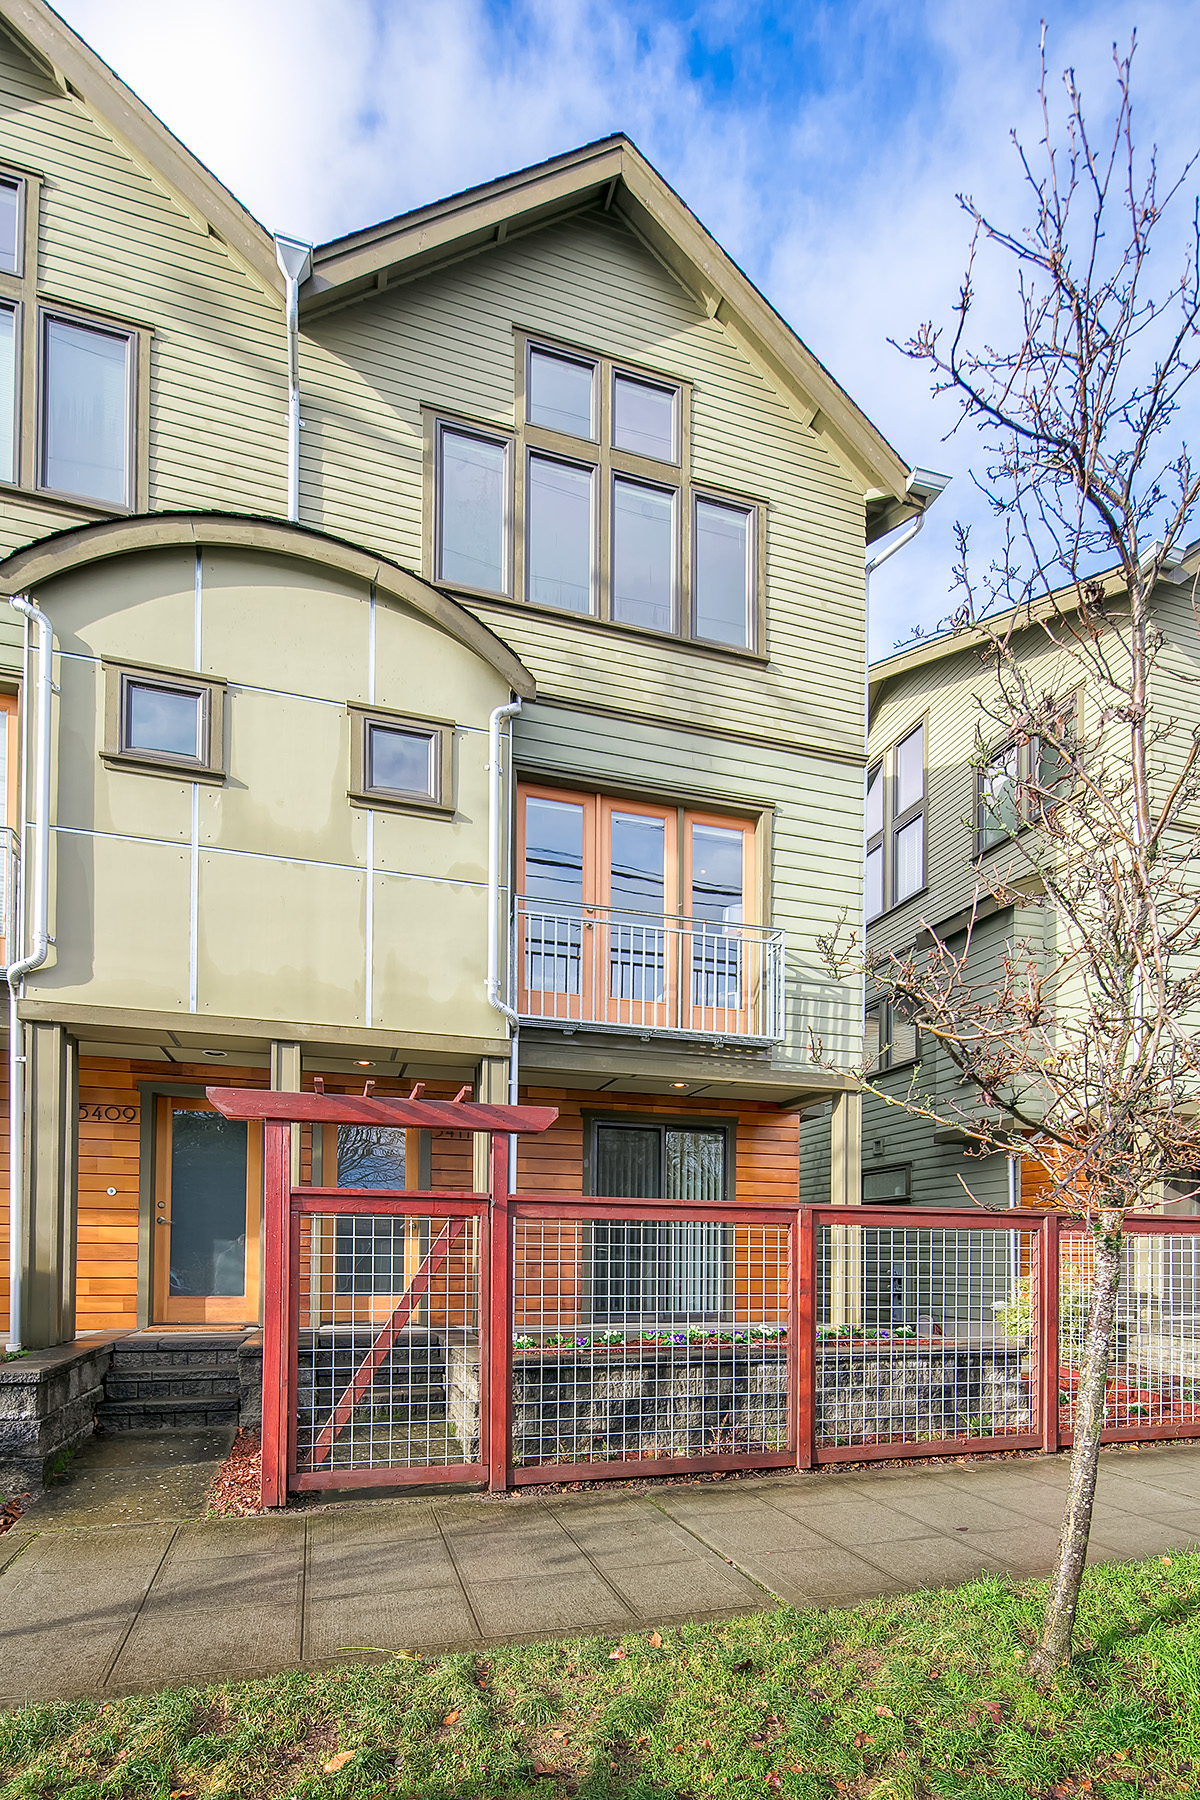 5411 Phinney Ave N. Seattle, WA 98103